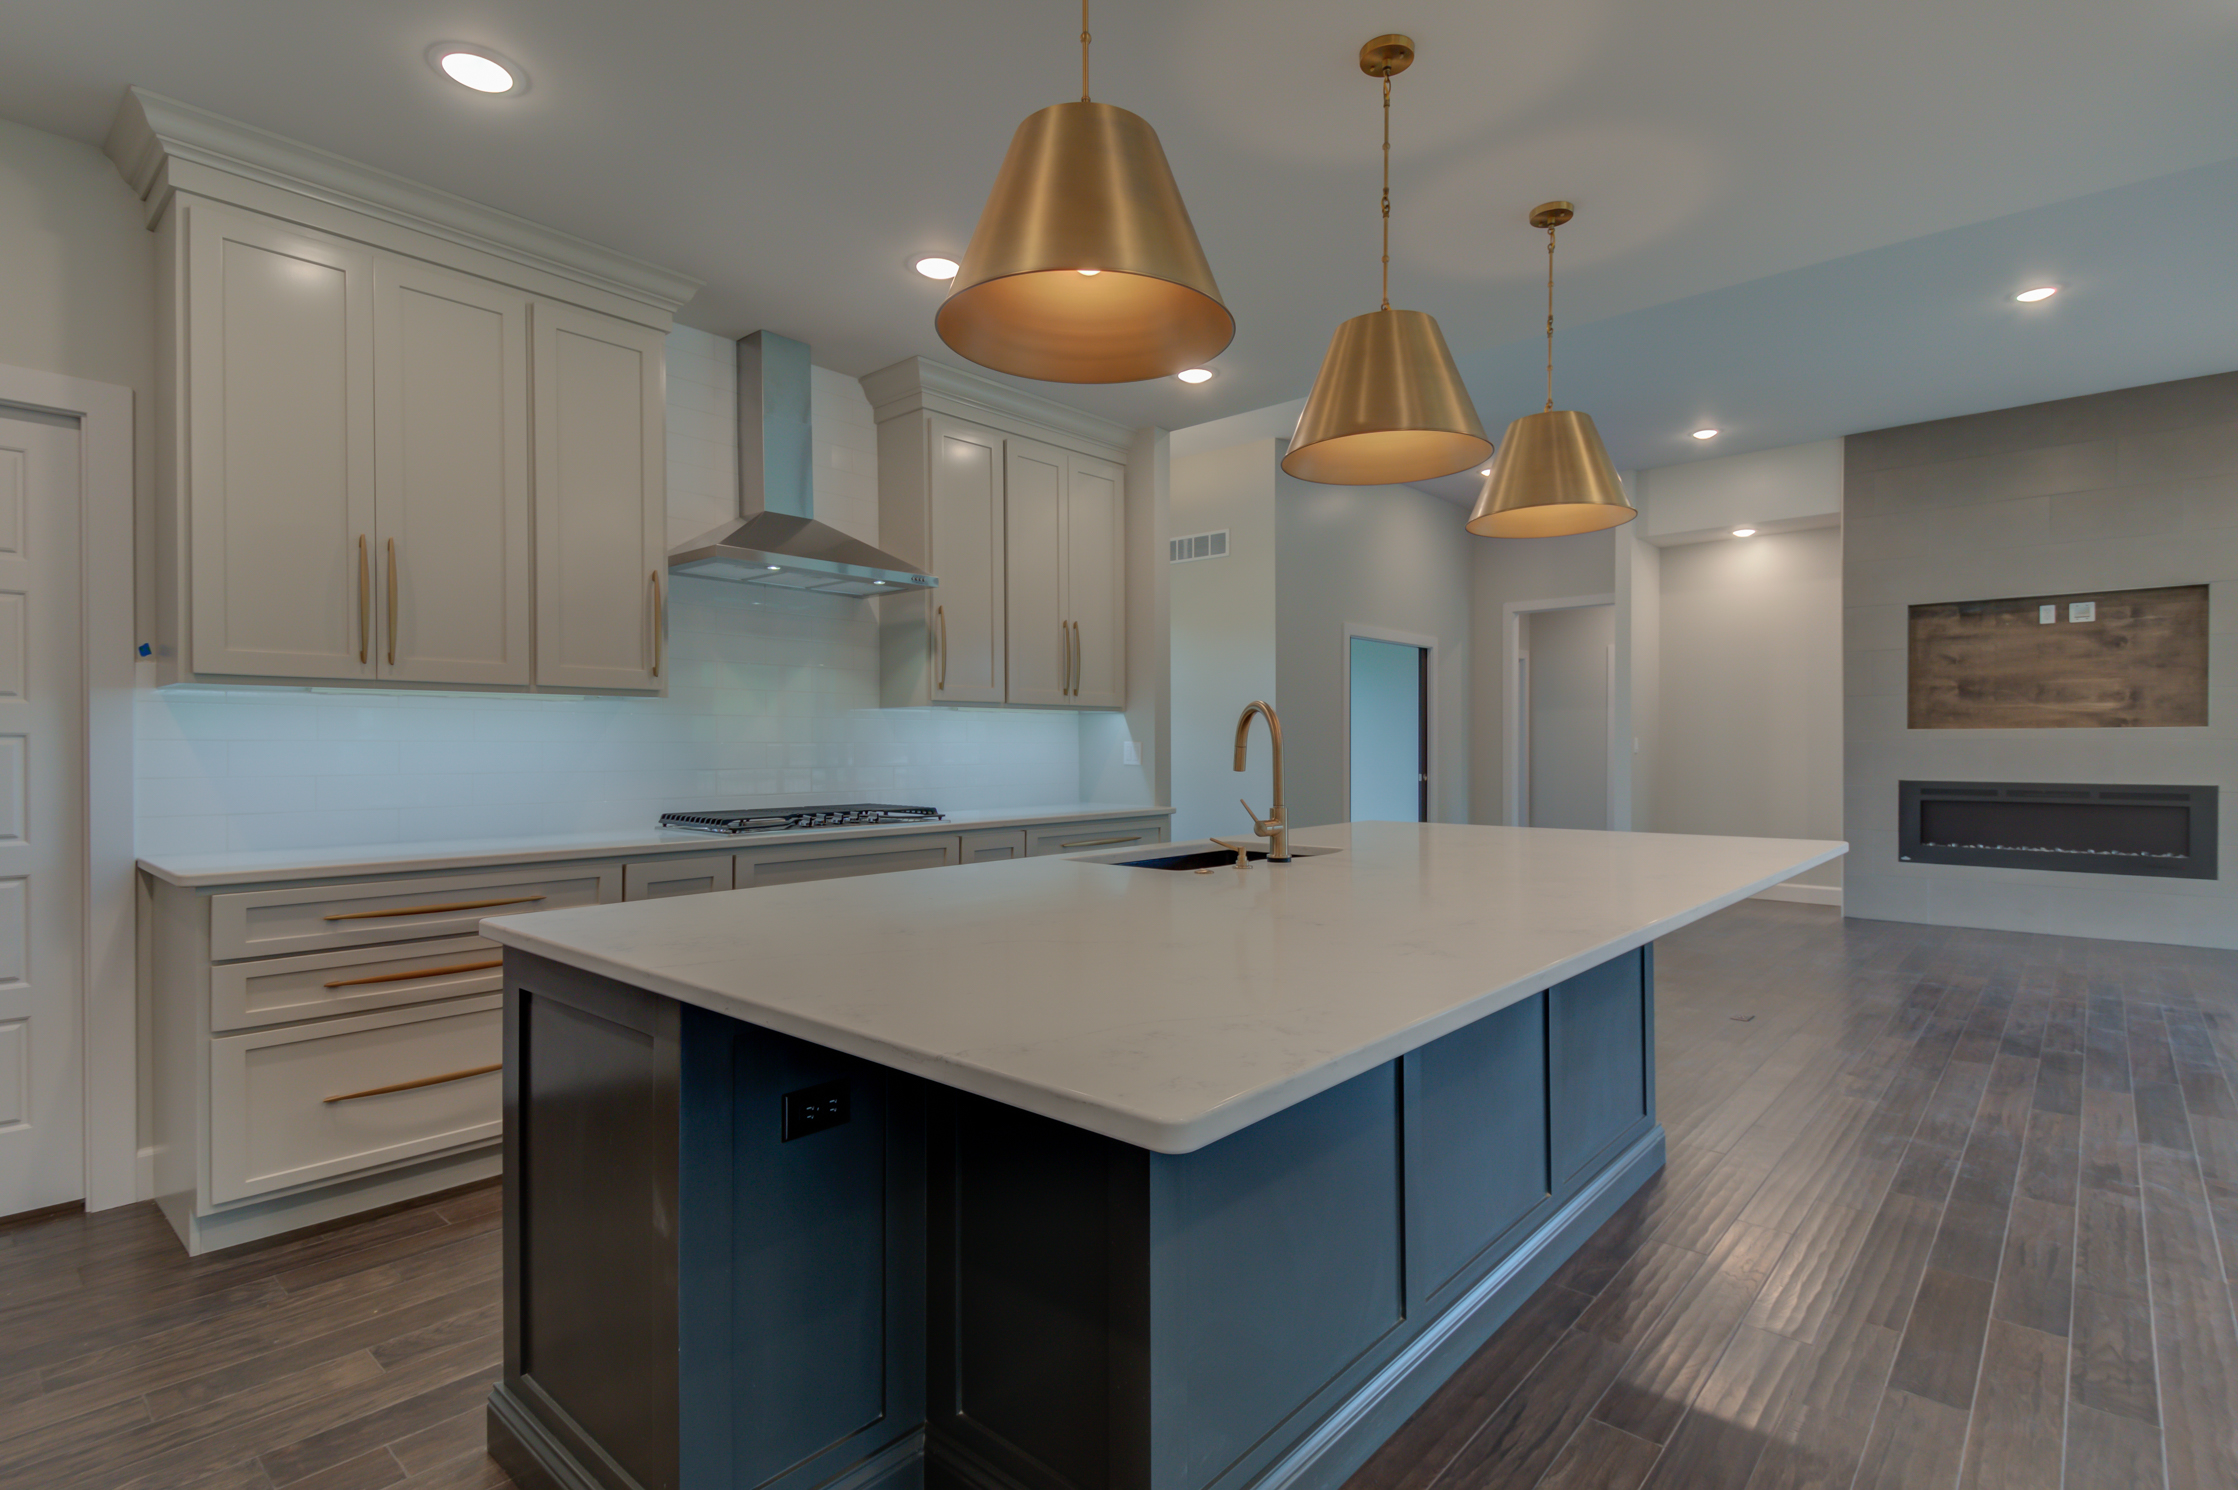 Kitchen_Custom_New_Home_Lighting.jpg